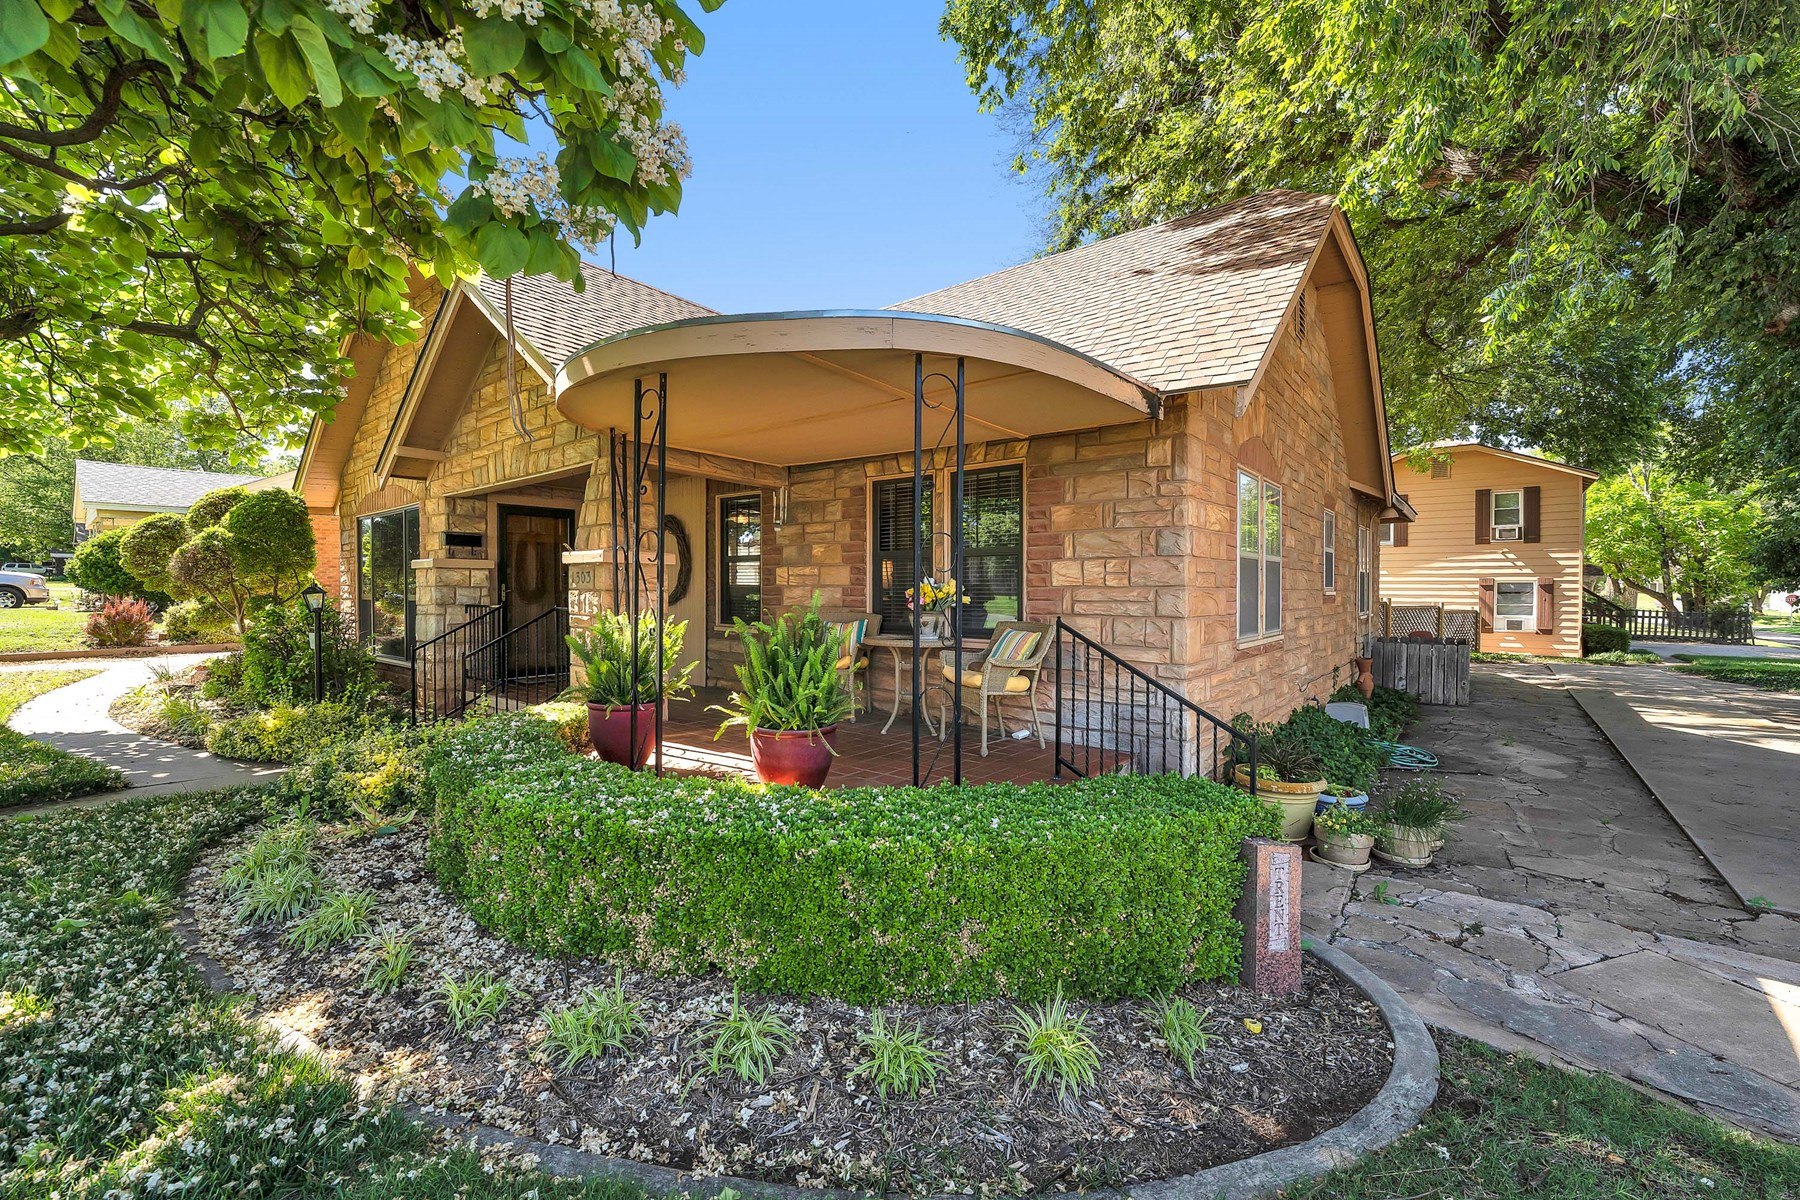 HOME ON CORNER LOT W/ DETACHED INCOME PRODUCING APARTMENTS